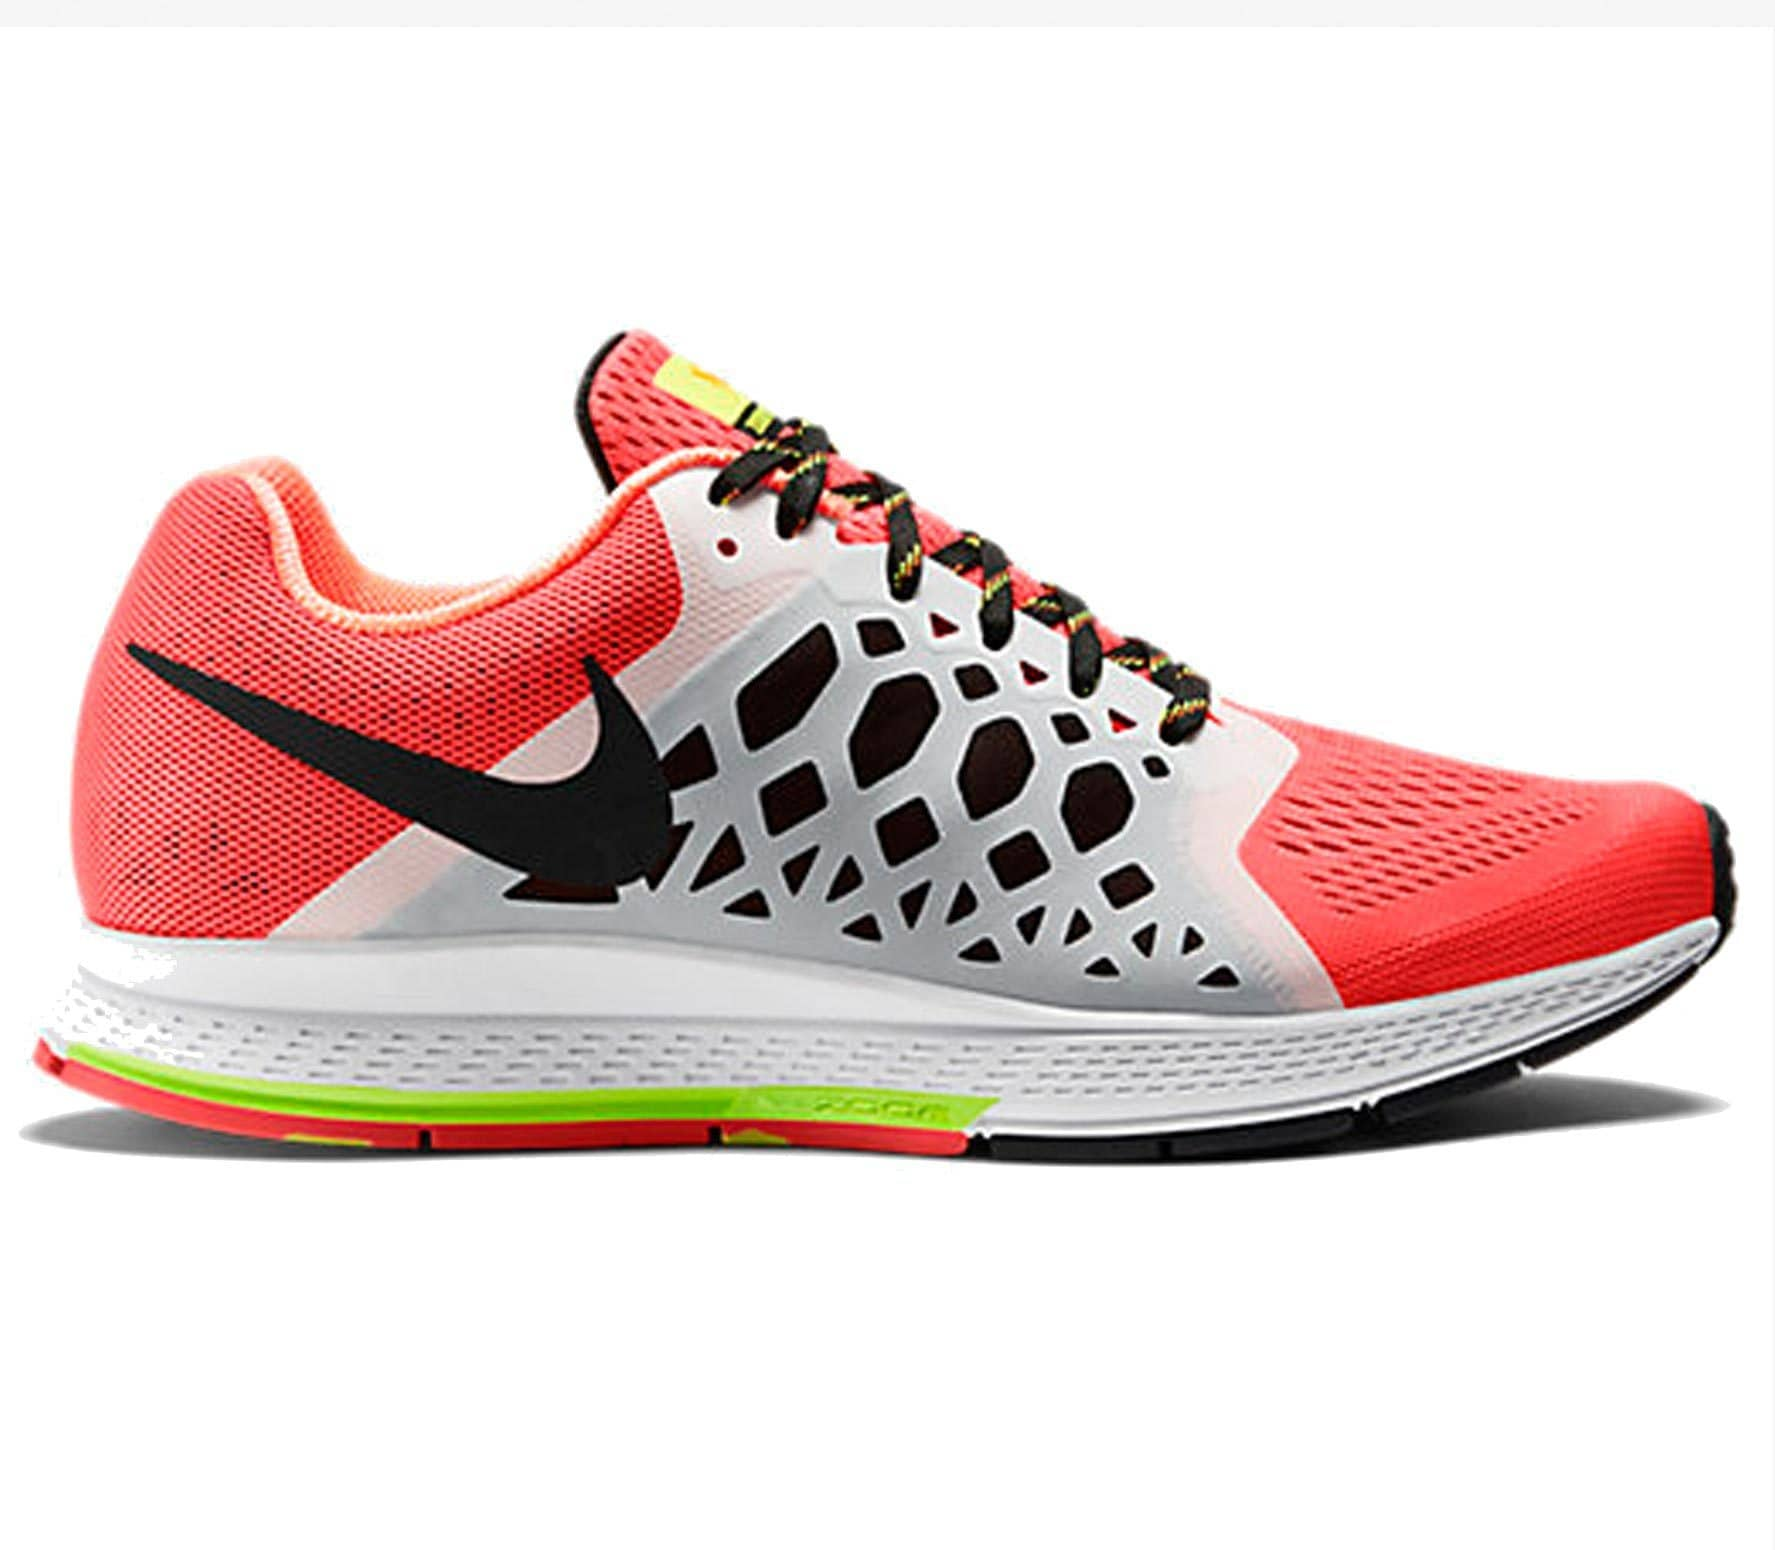 3d079be182bb Nike - Air Zoom Pegasus 31 women s running shoes (orange black ...